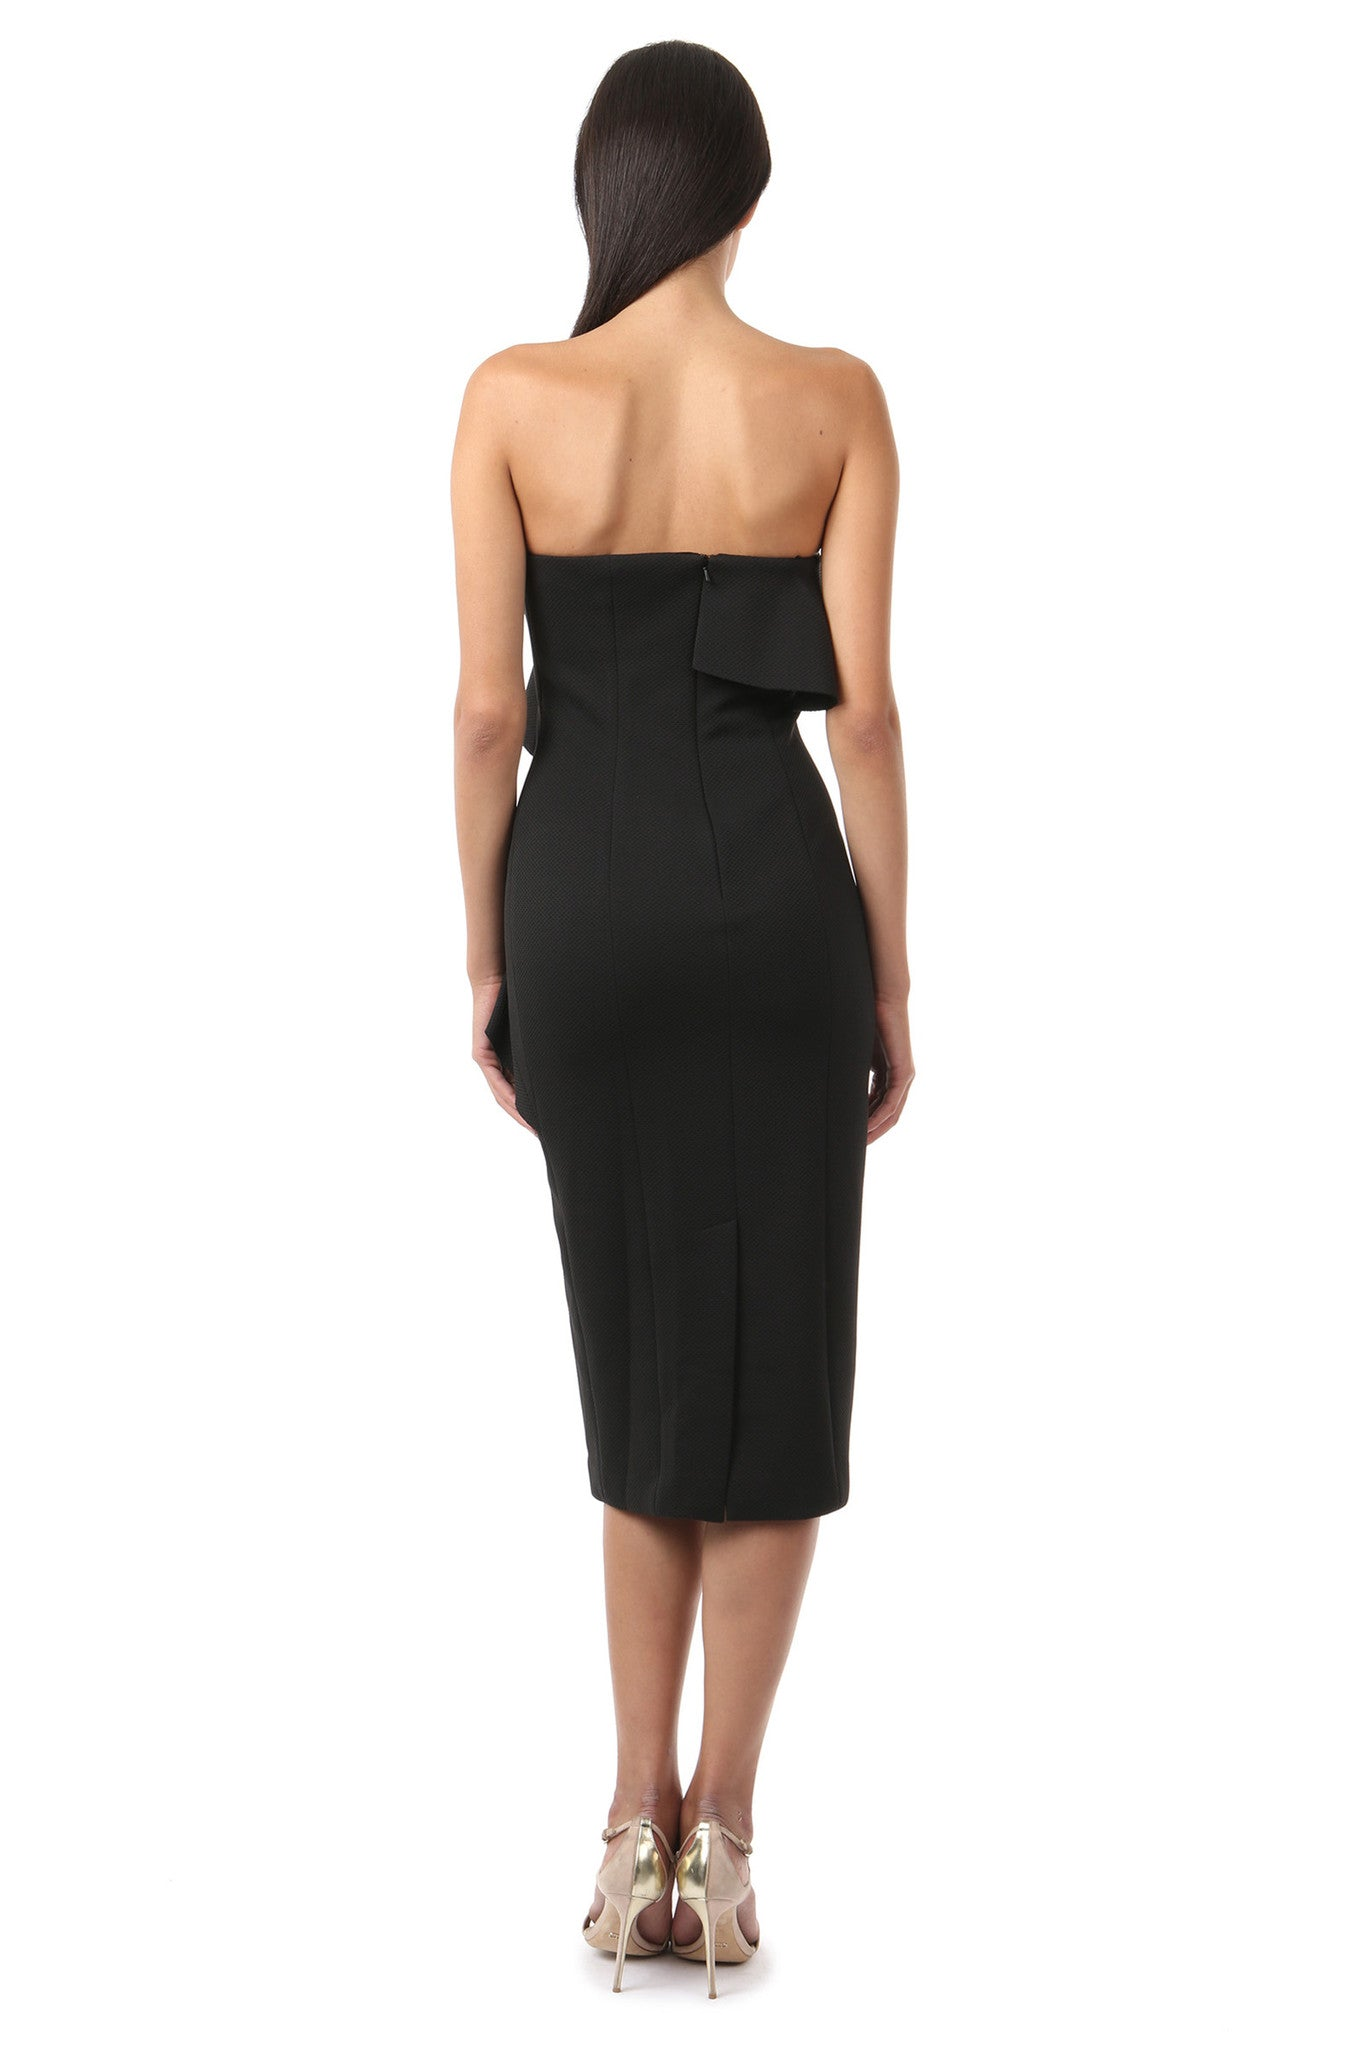 Jay Godfrey Black Sleeveless Ruffle Dress - Back View